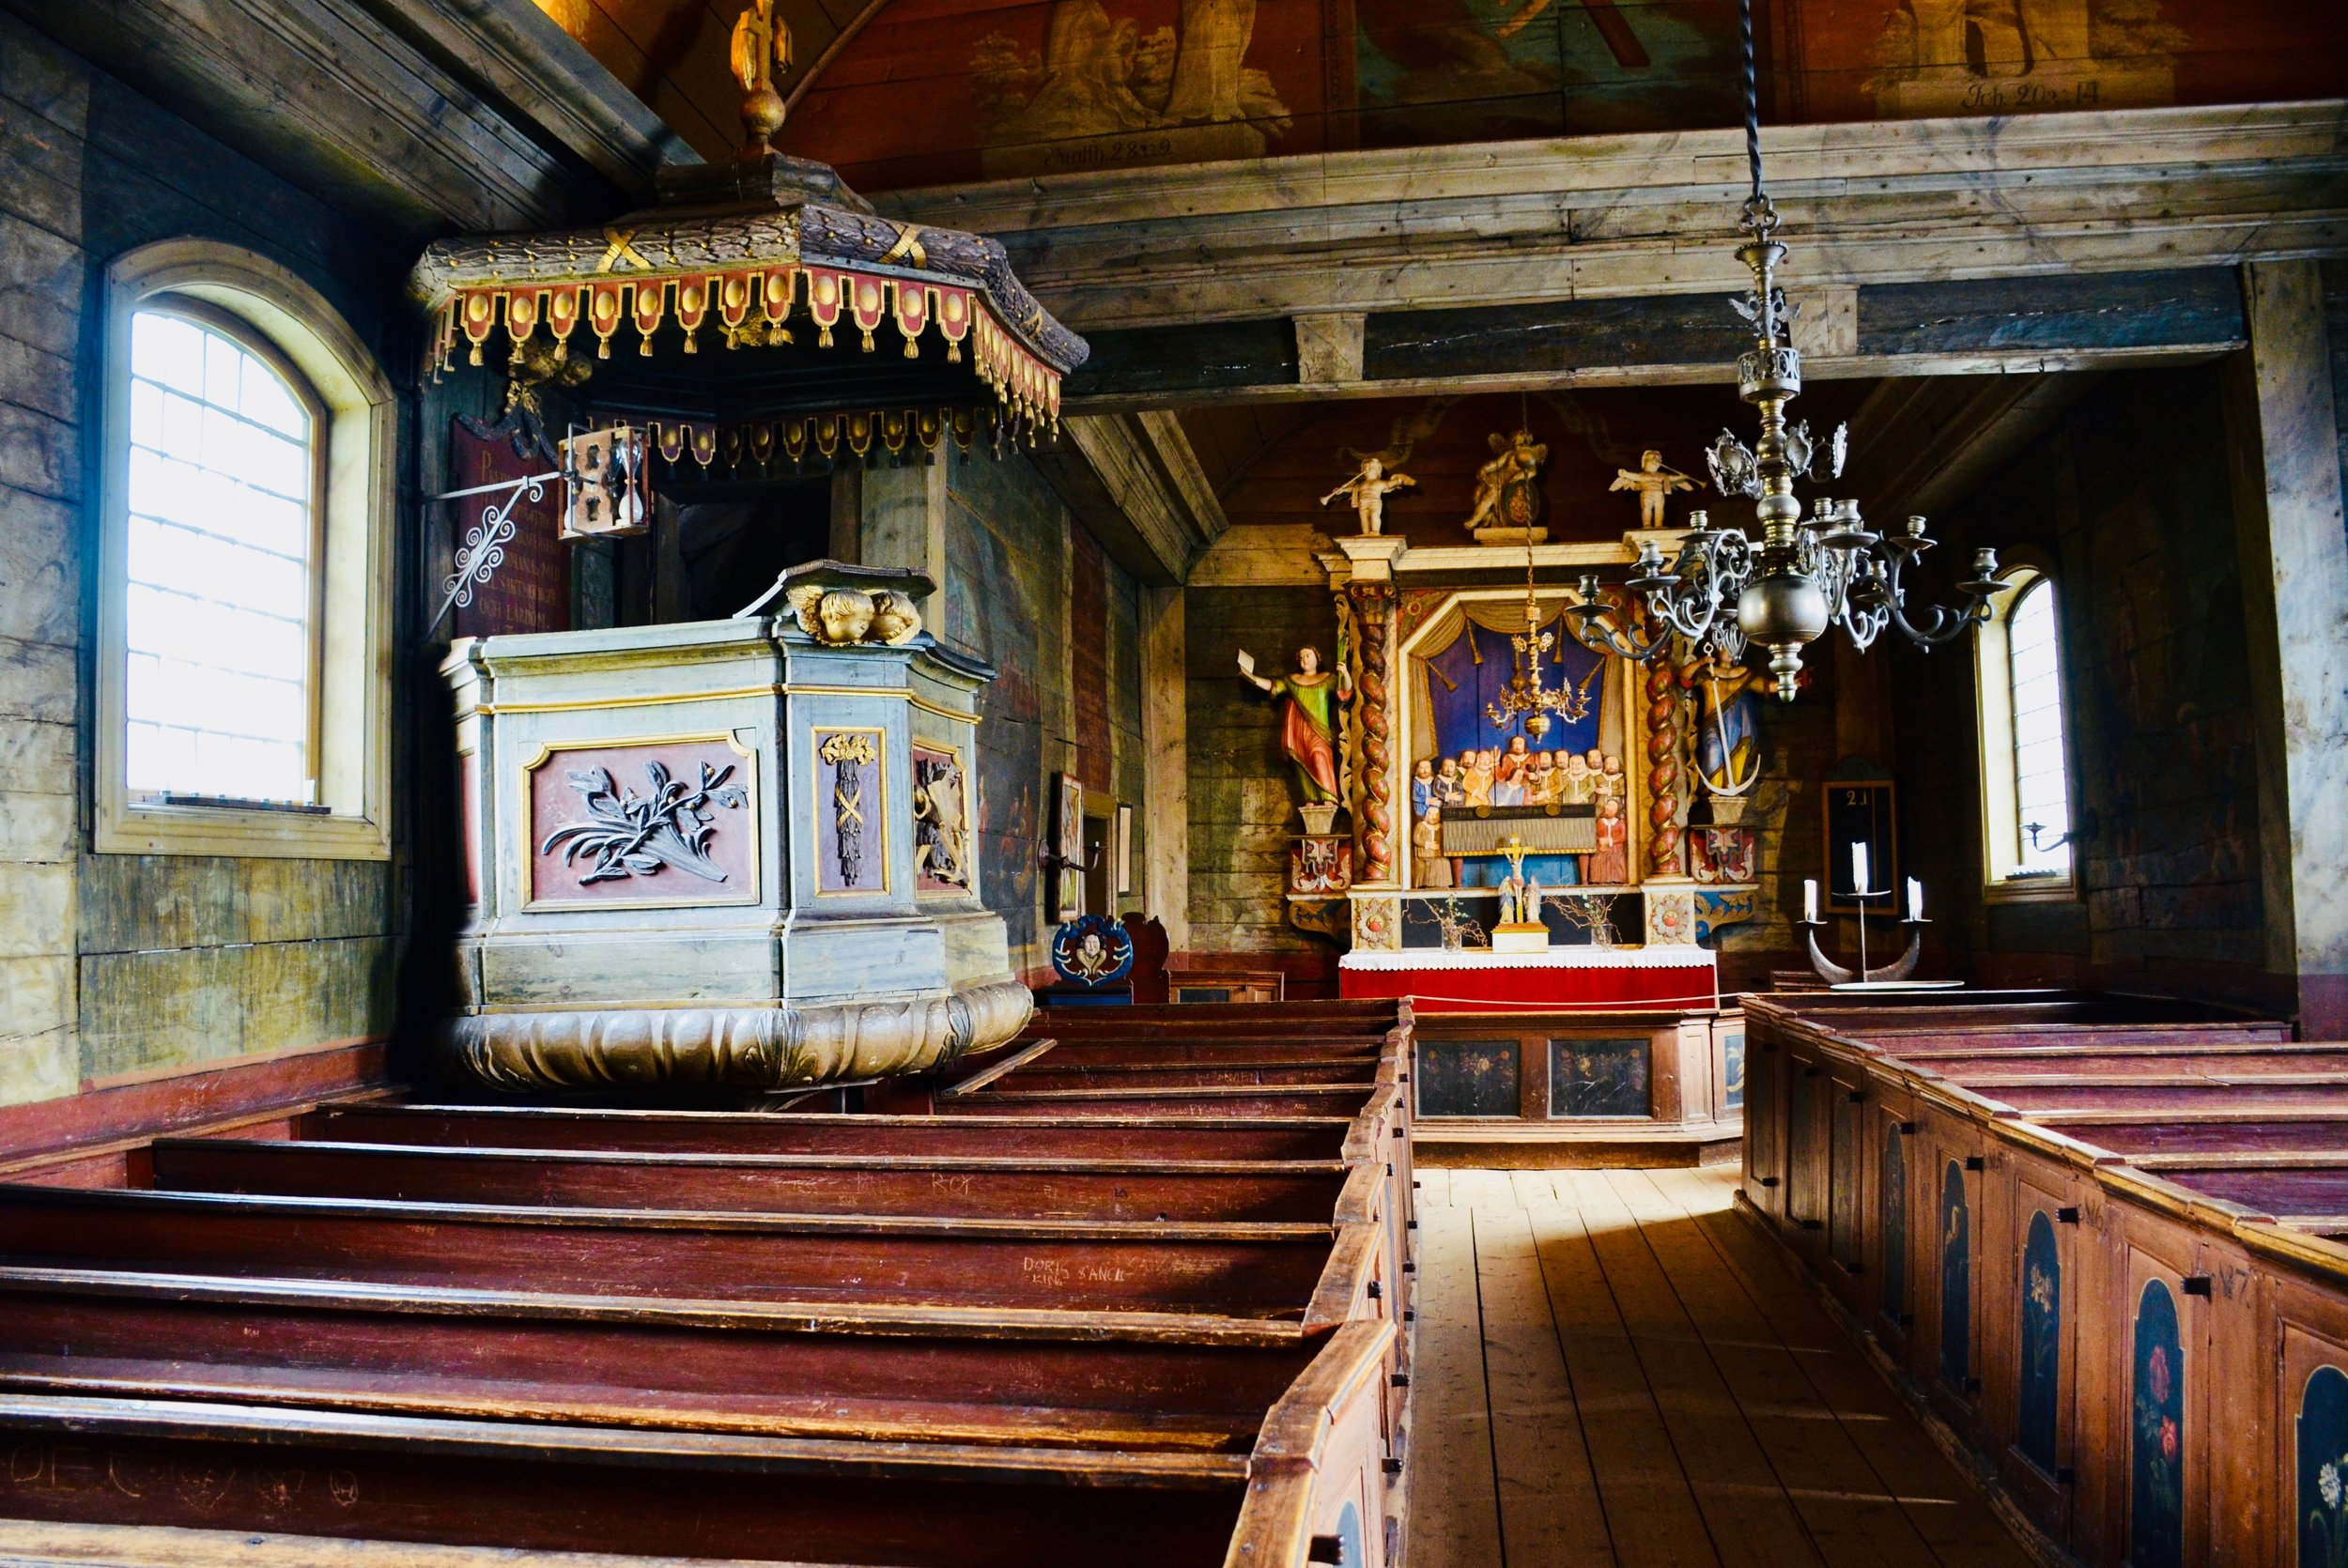 Interior of the 1652 Swedish chapel, Kulturen, Lund, Sweden.